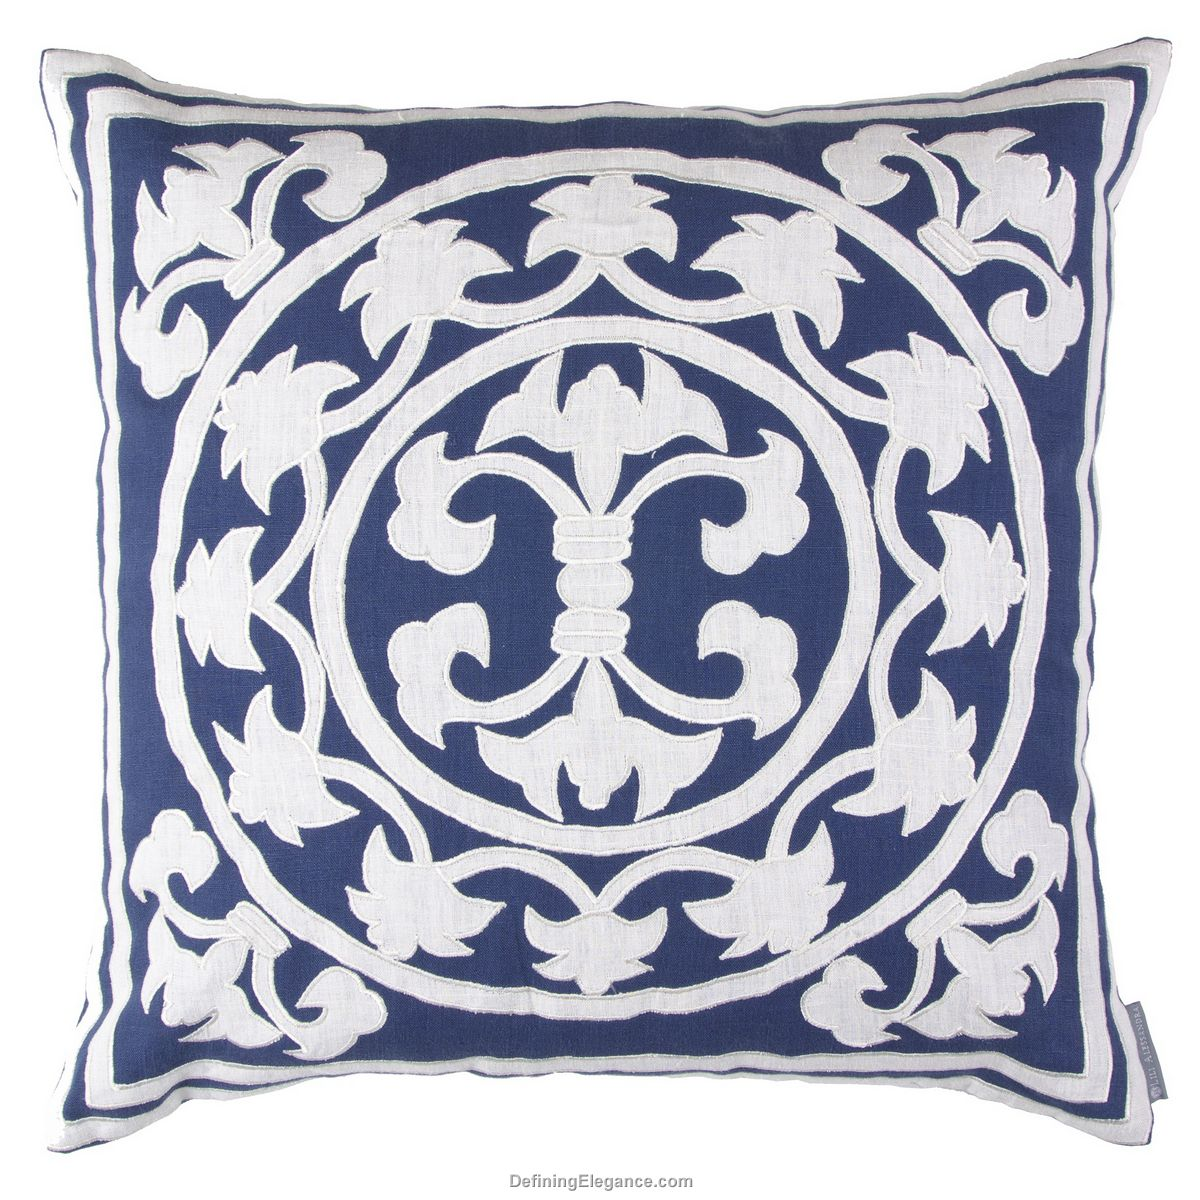 Throw Pillows Navy And White : Discontinued Lili Alessandra Navy Linen with White Pillows and Throw